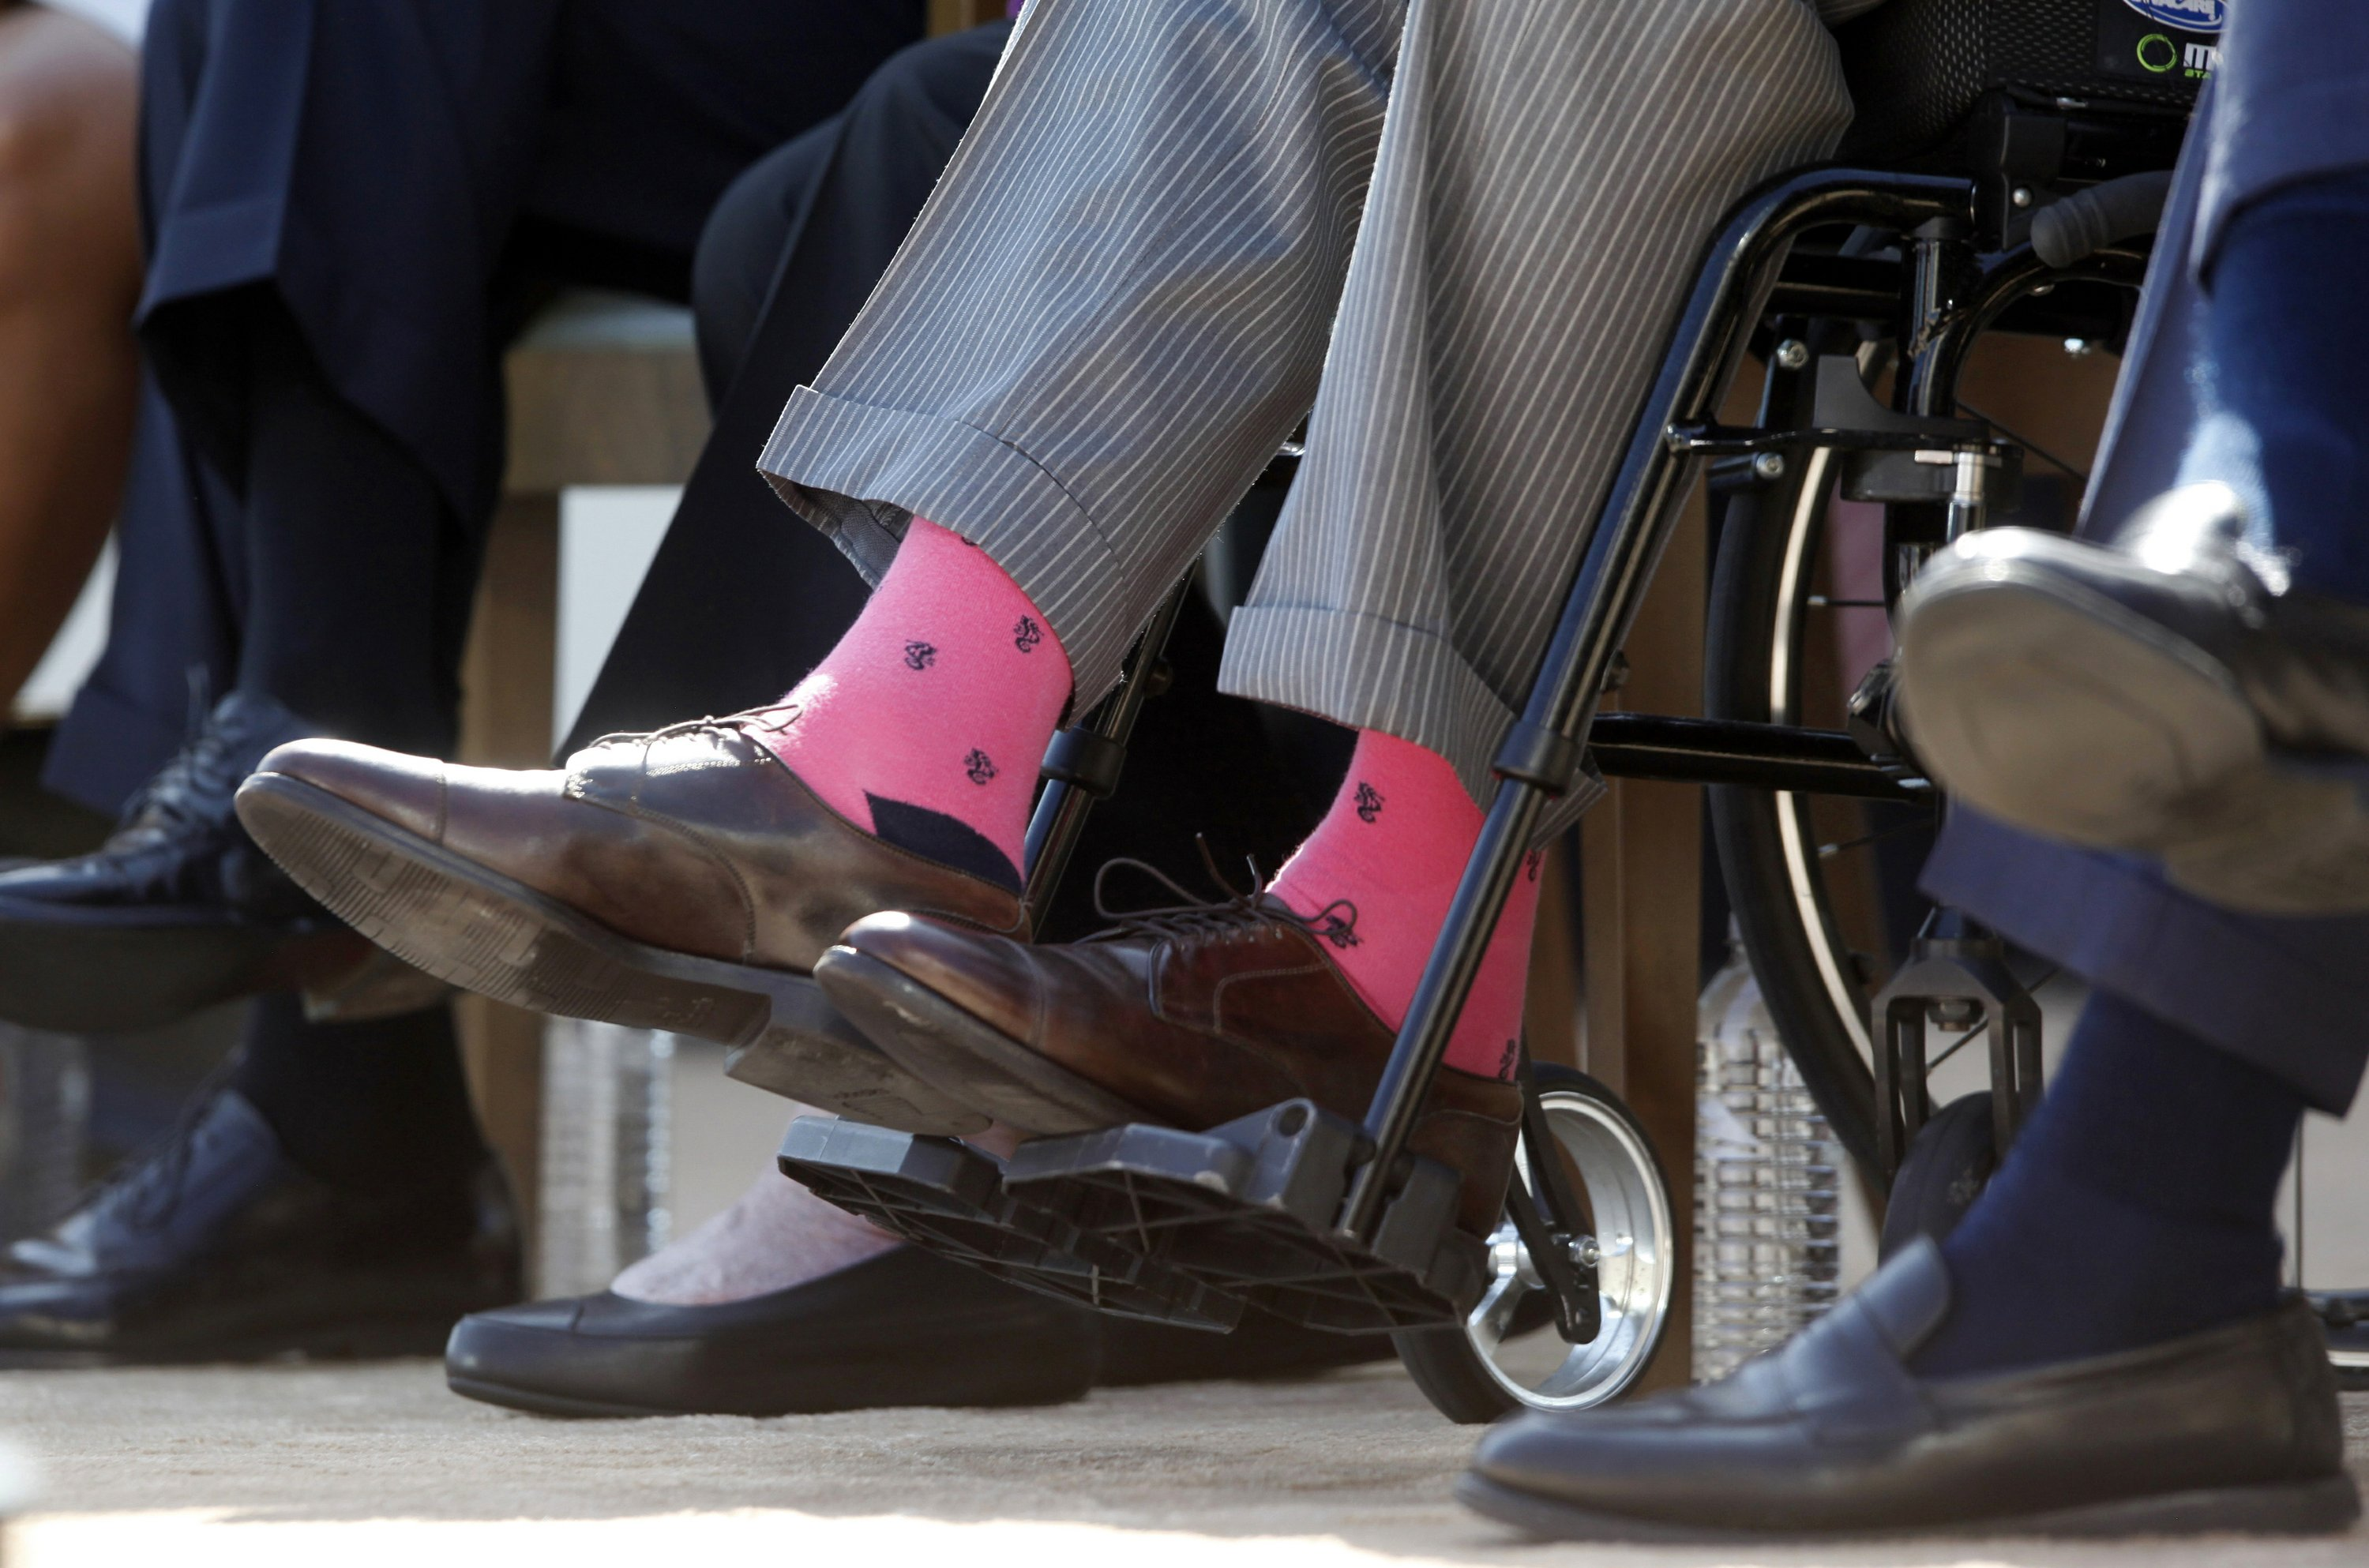 Not just a fashion statement: Bush's socks spoke volumes